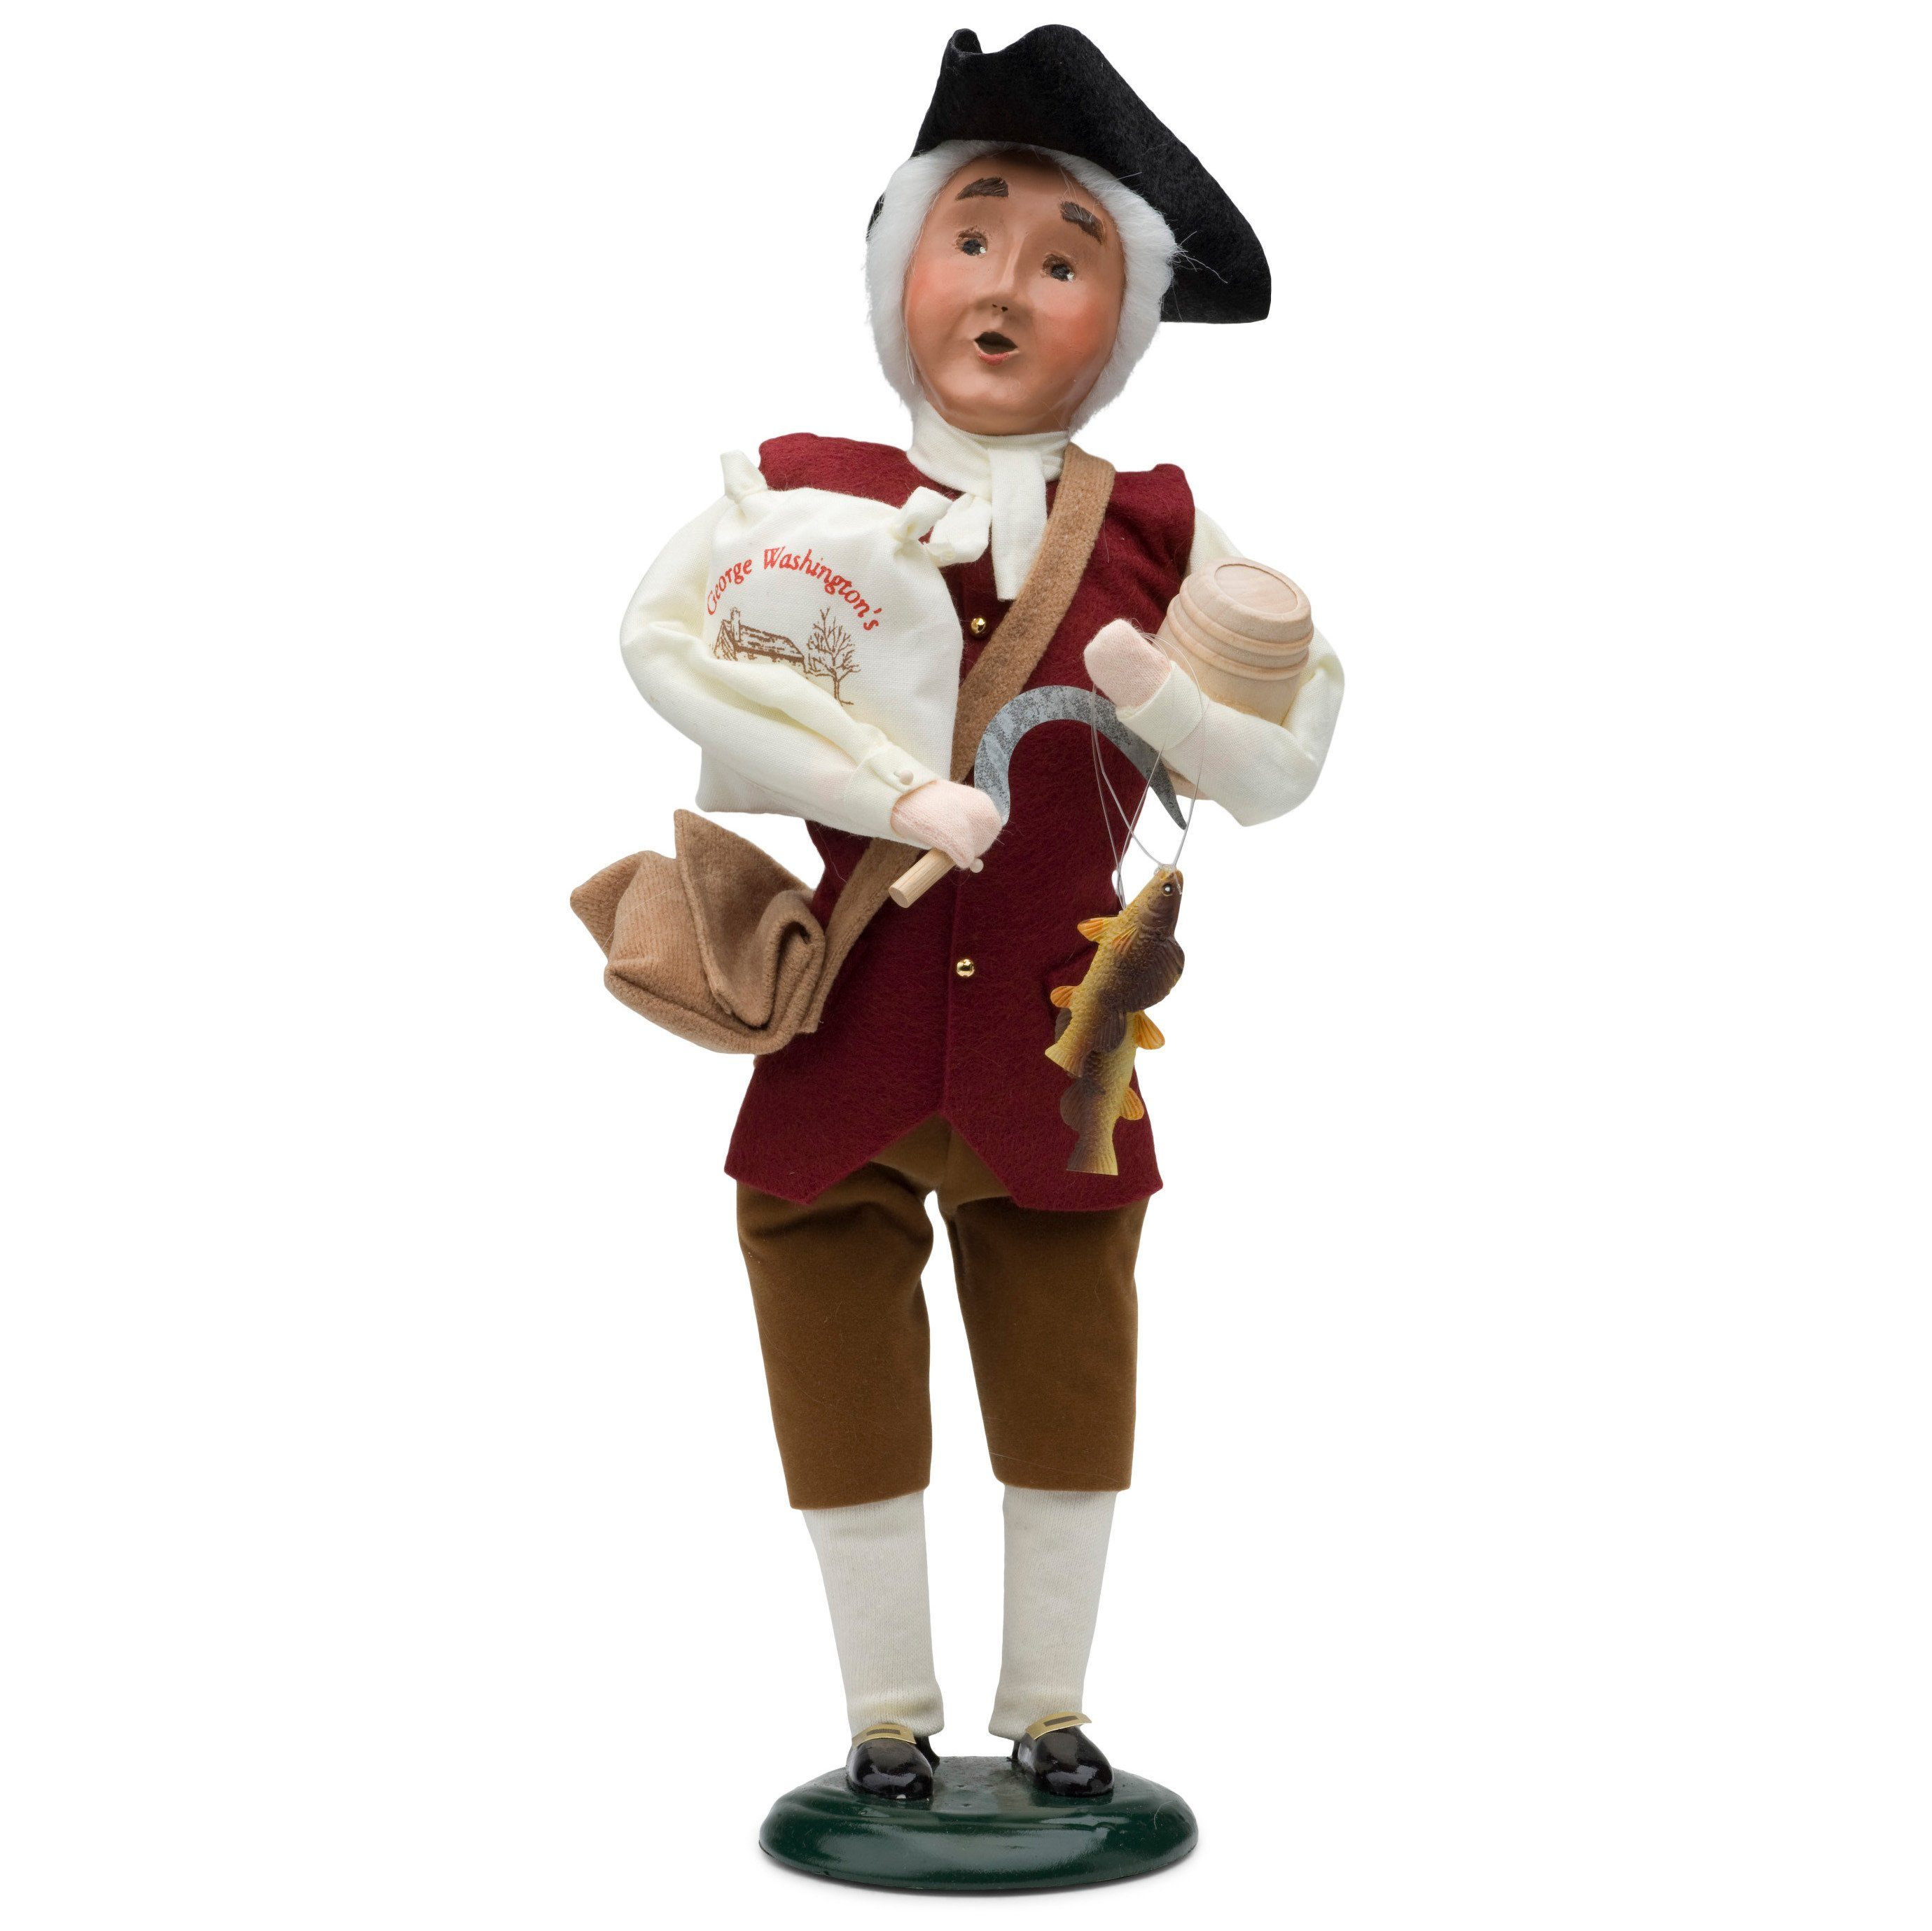 Entrepreneur George Washington Caroler